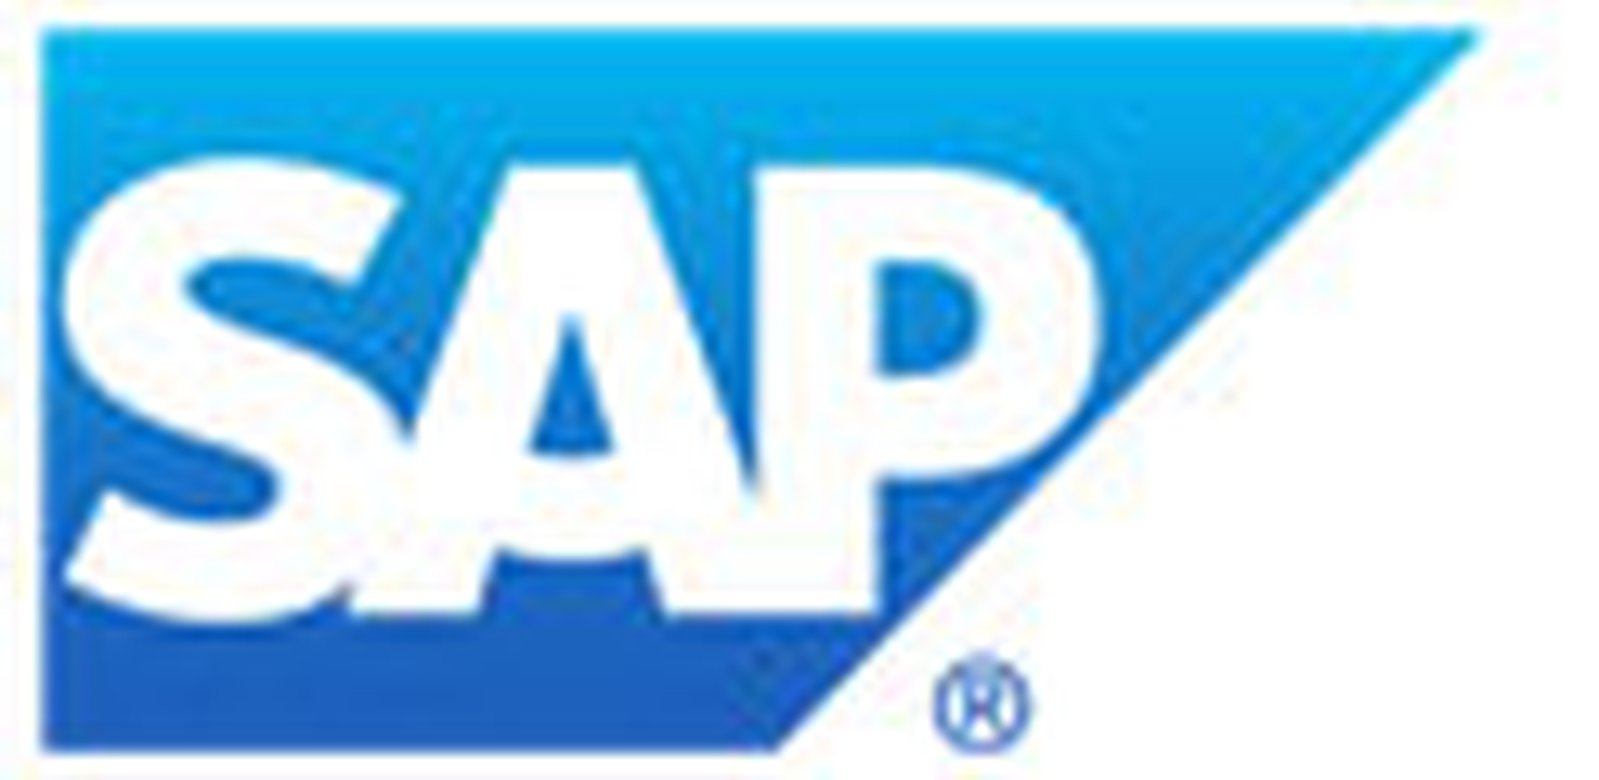 Link and logo of Gold Sponsor SAP of Zukunft Personal Europe